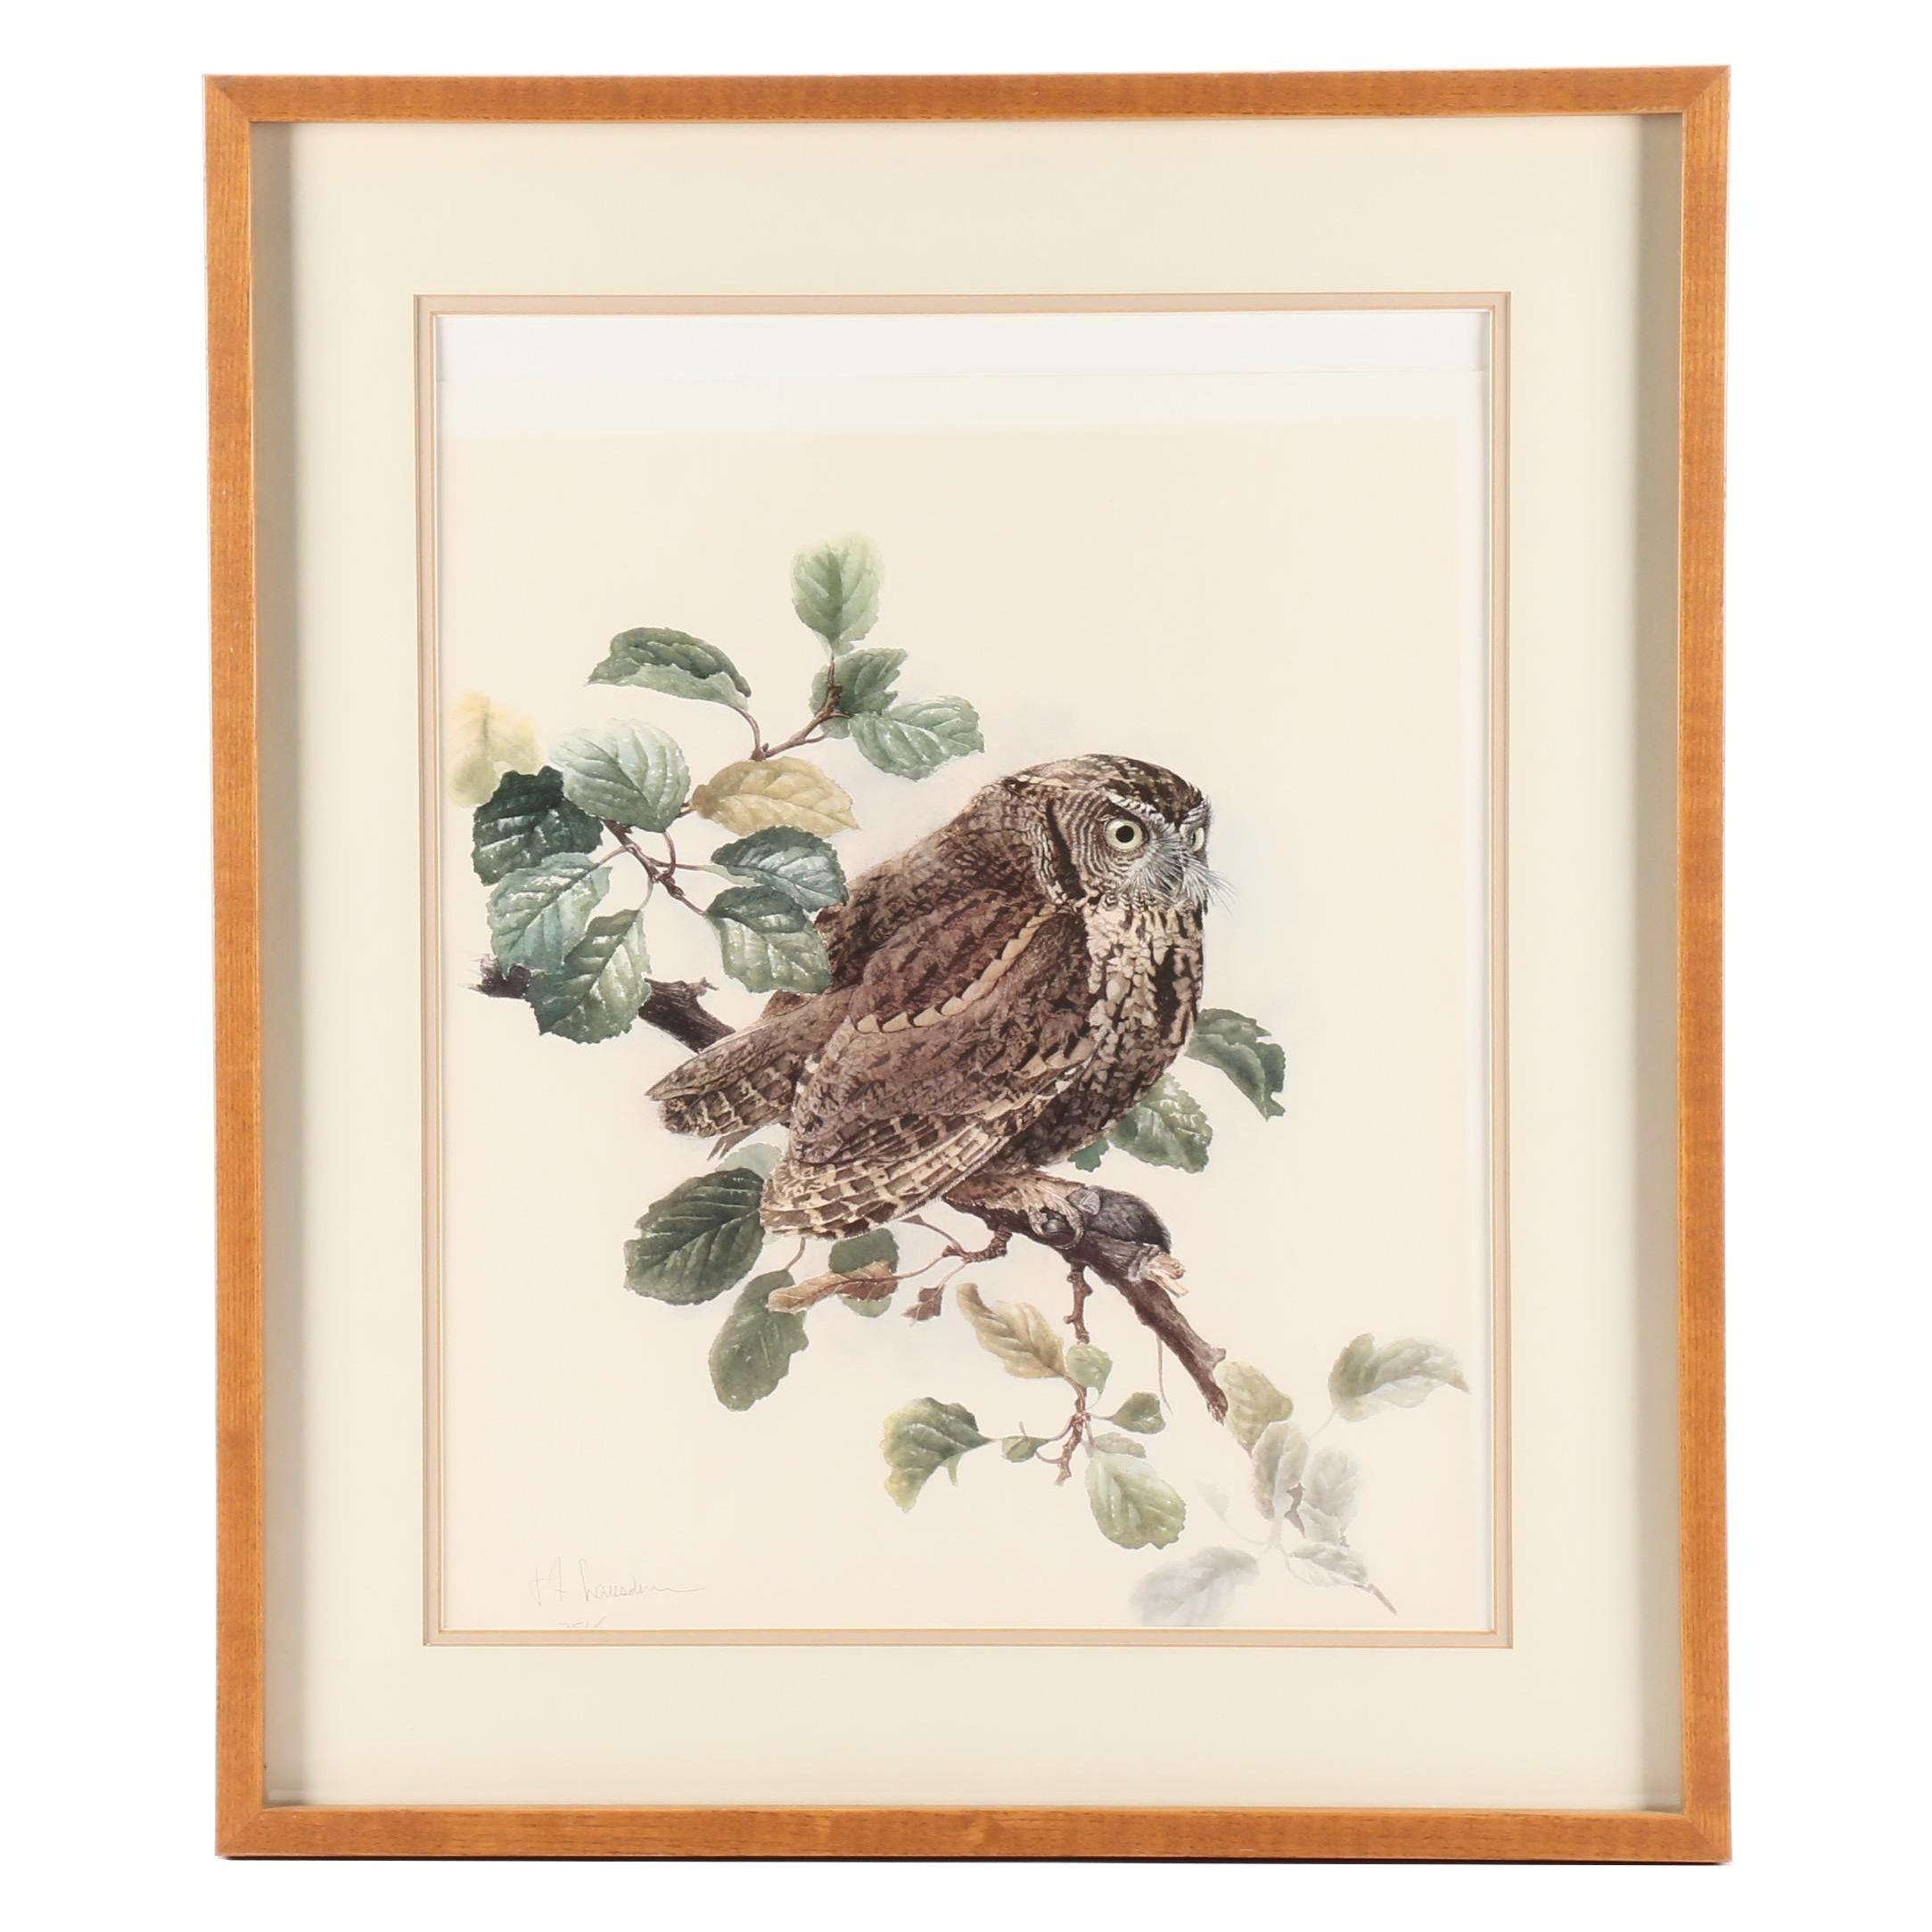 James Fenwick Lansdowne Offset Lithograph of Perched Owl